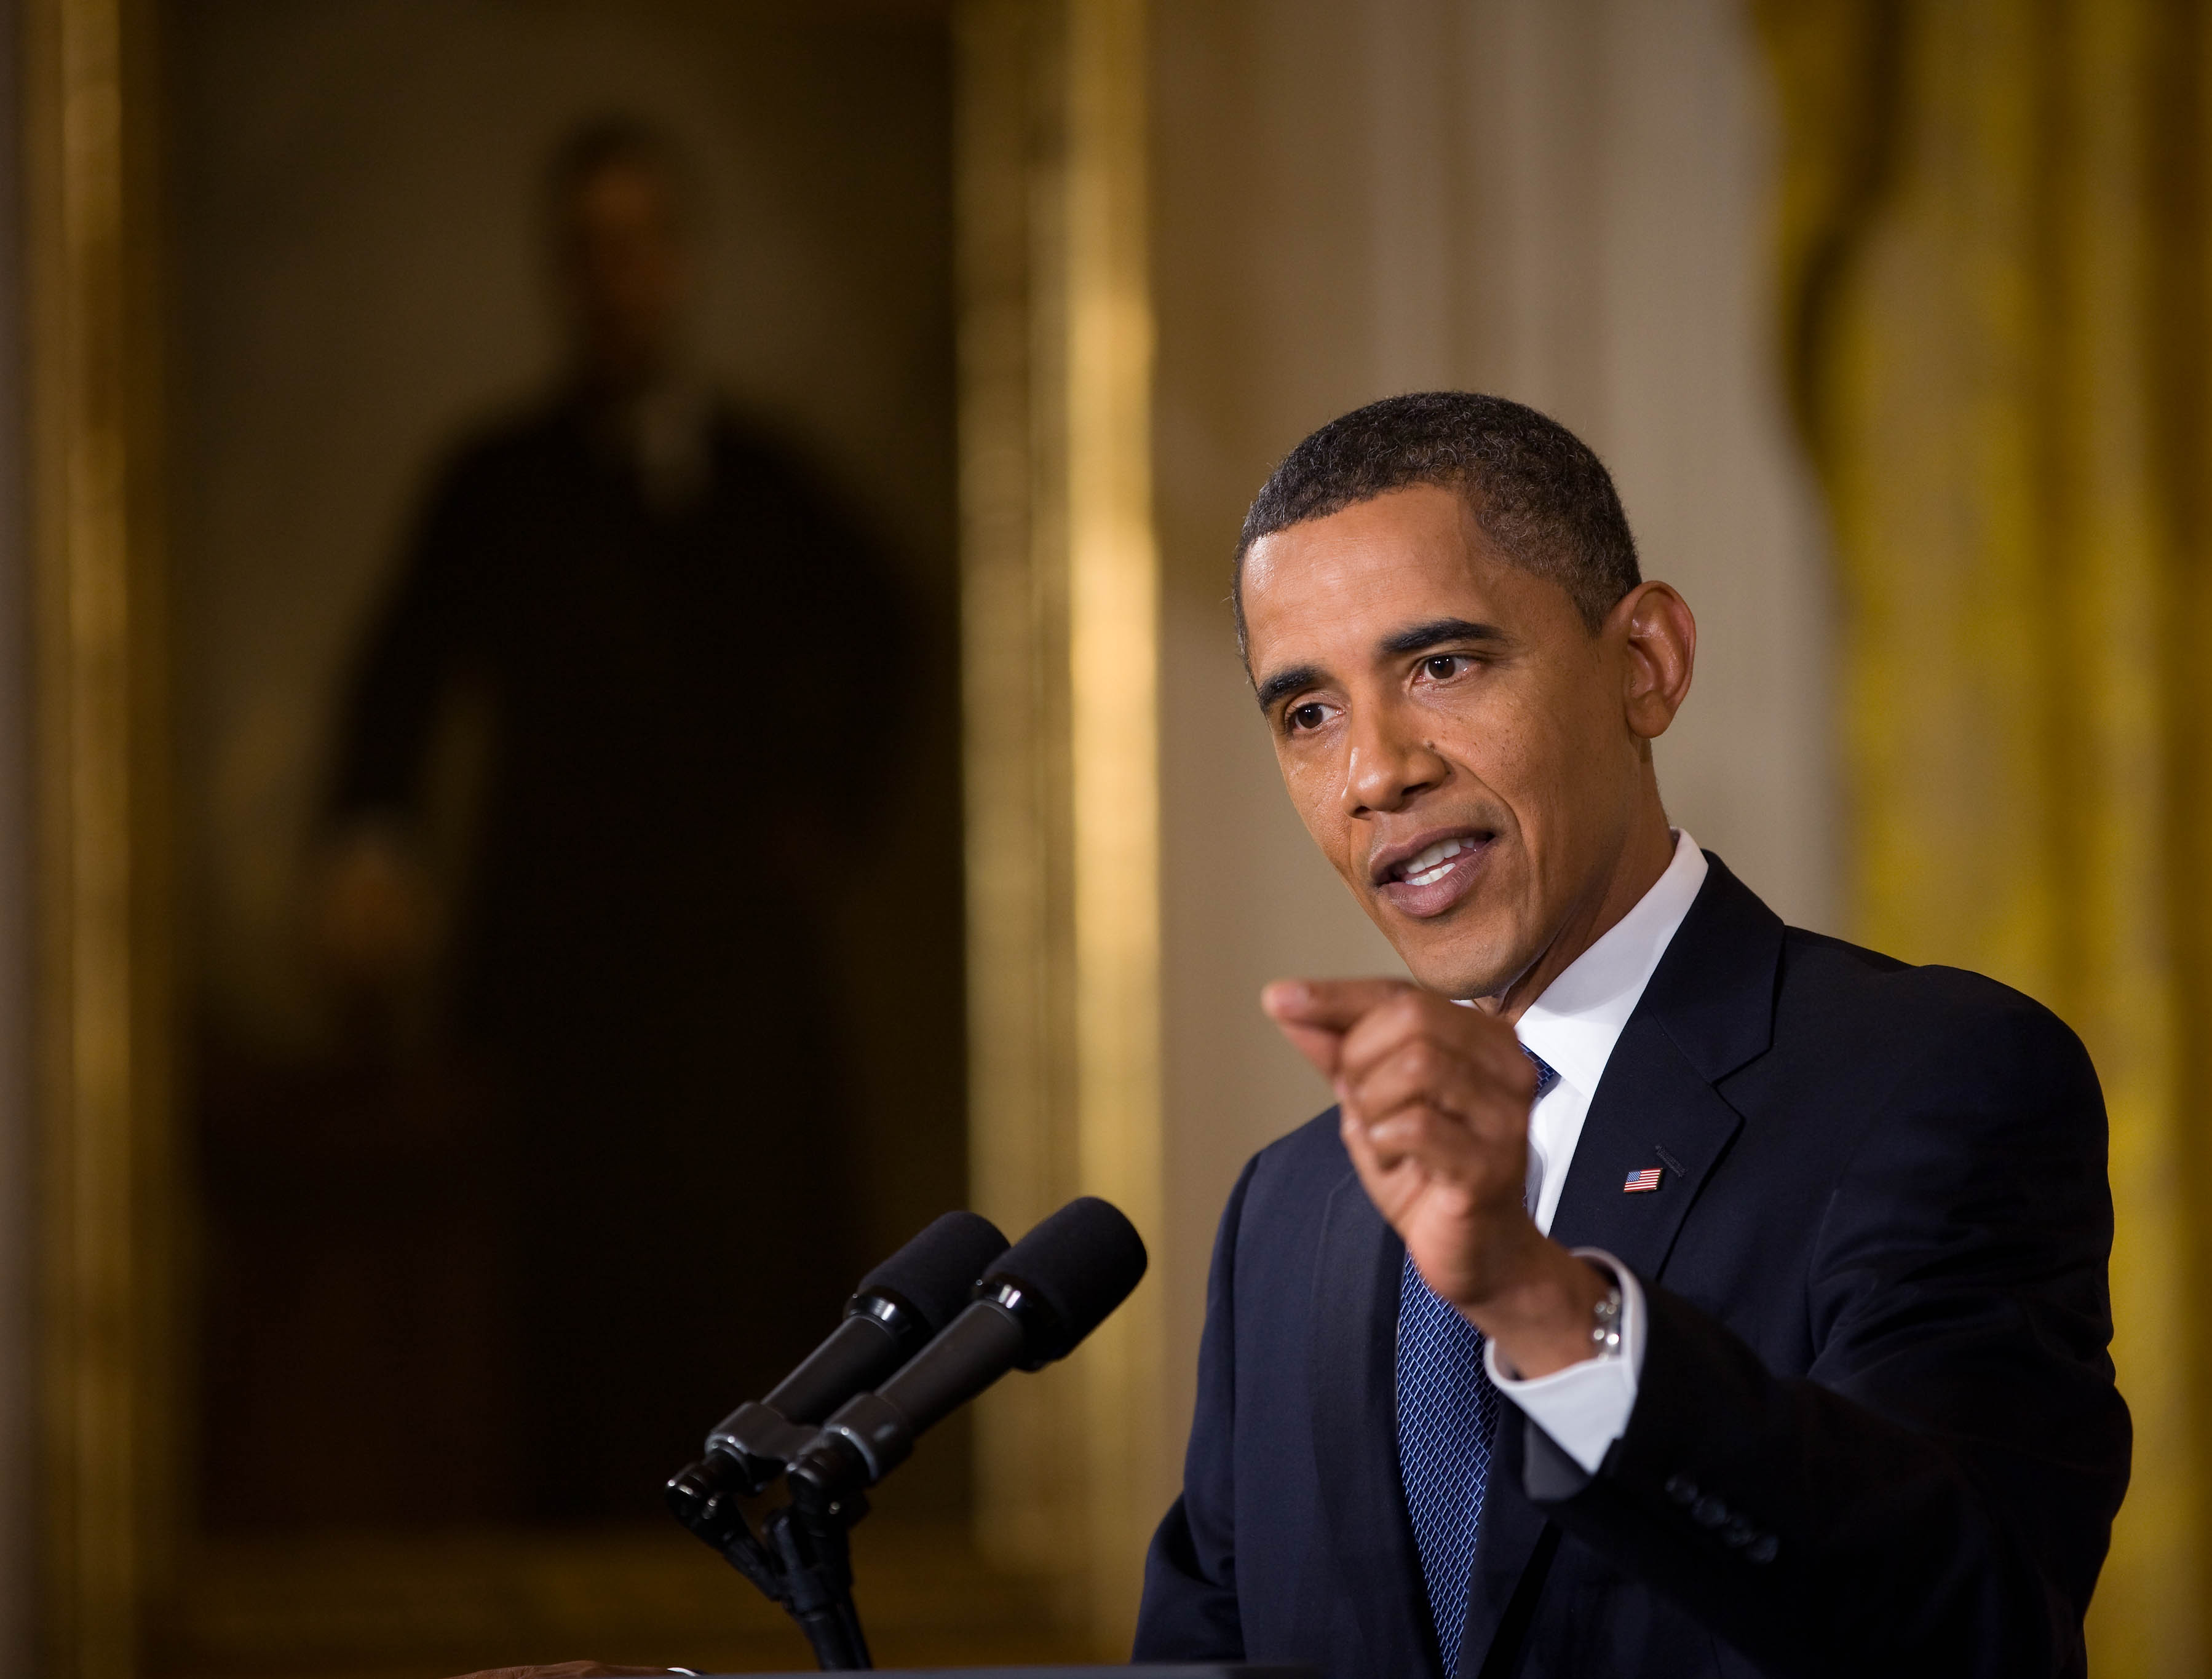 President Barack Obama Holds a News Conference in the East Room of the White House